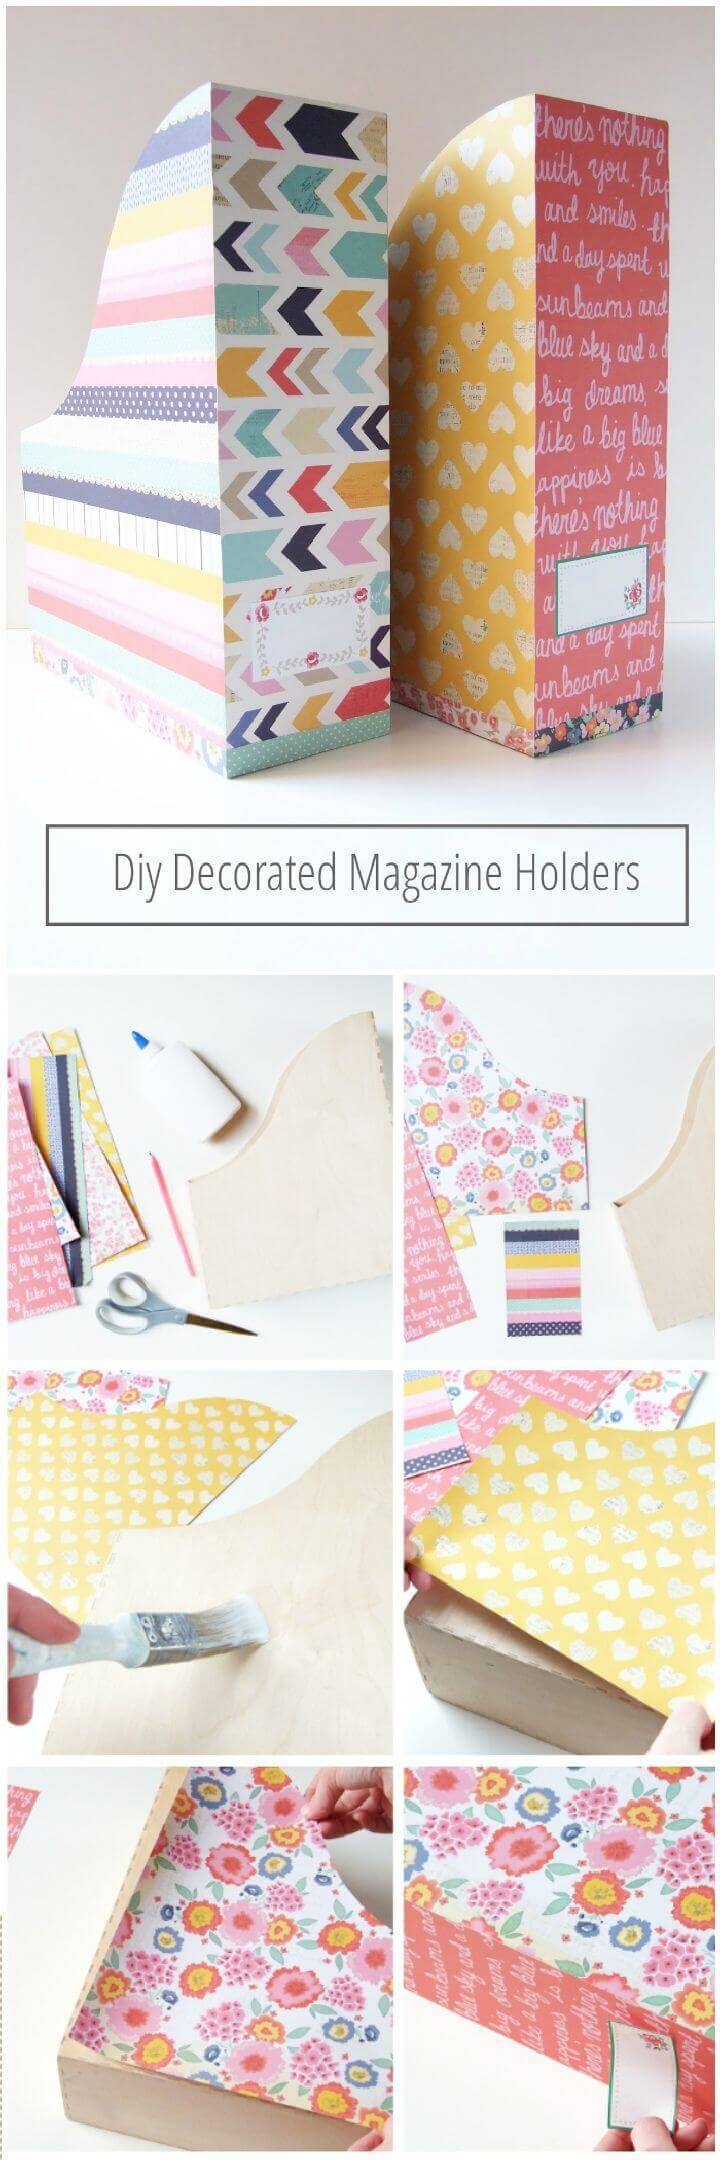 DIY Magazine Dacorated Holder